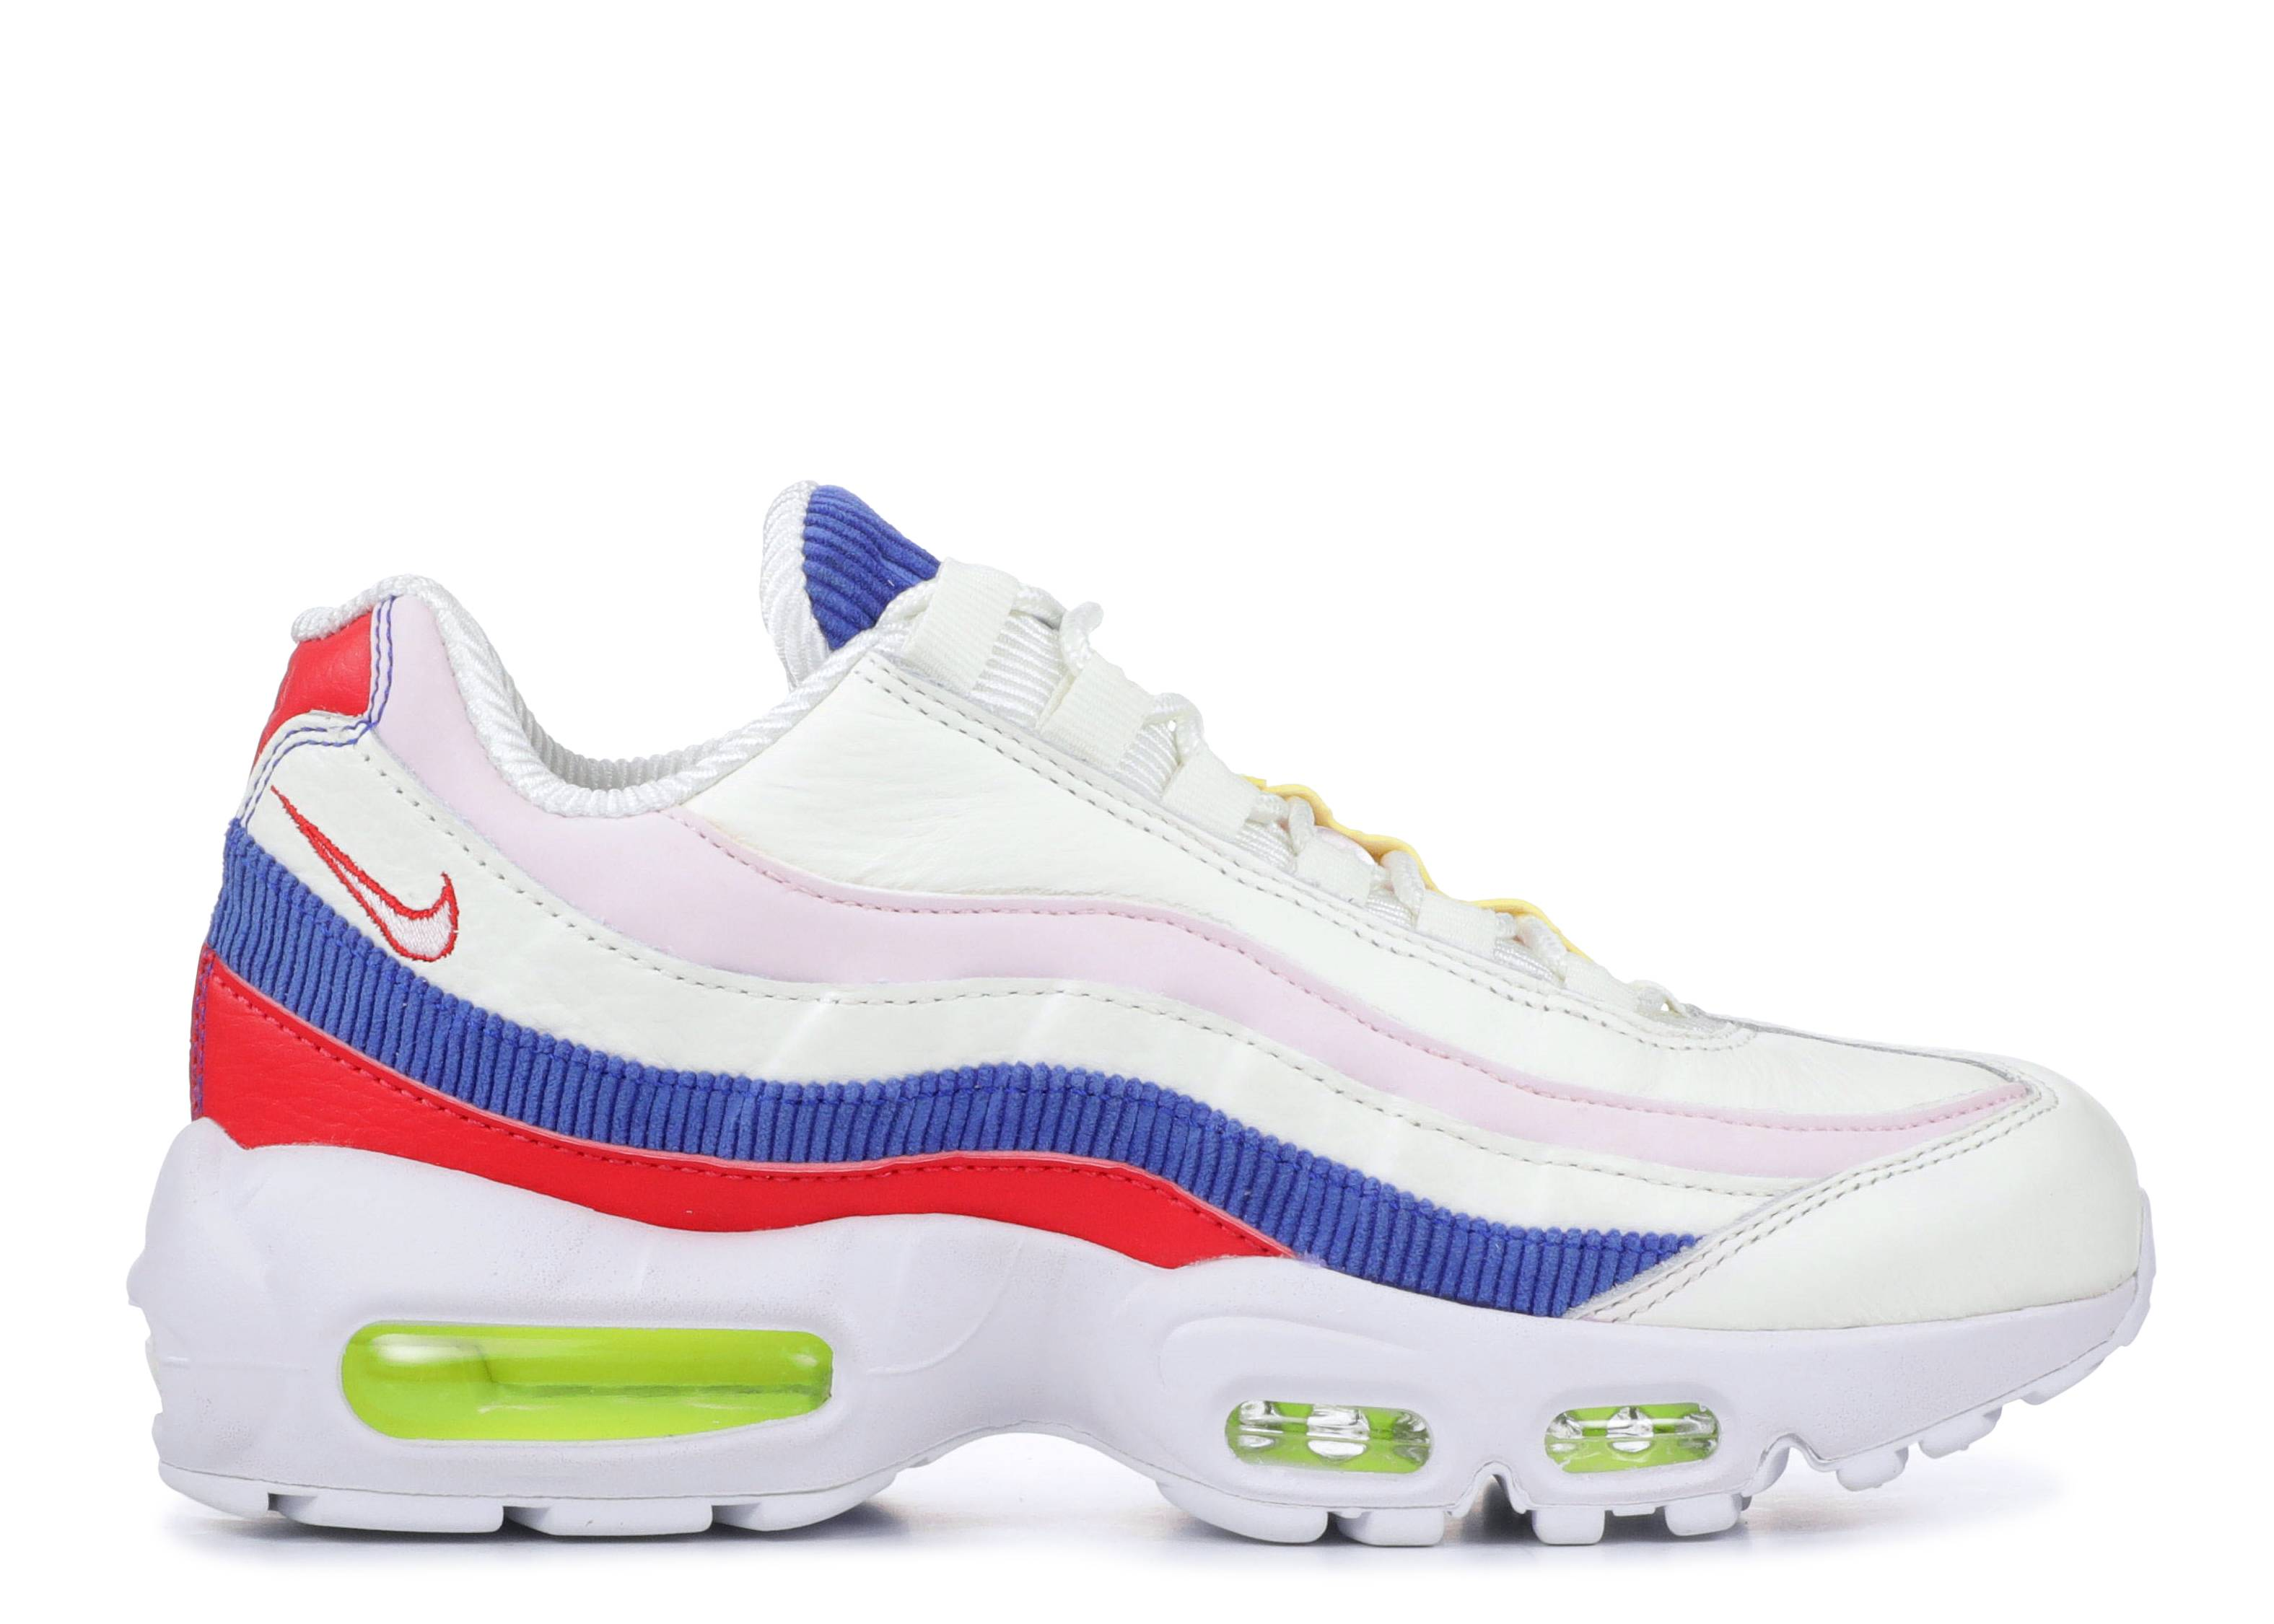 c13aff0857 Nike Air Max 95 - Men's & Women's Shoes | Flight Club